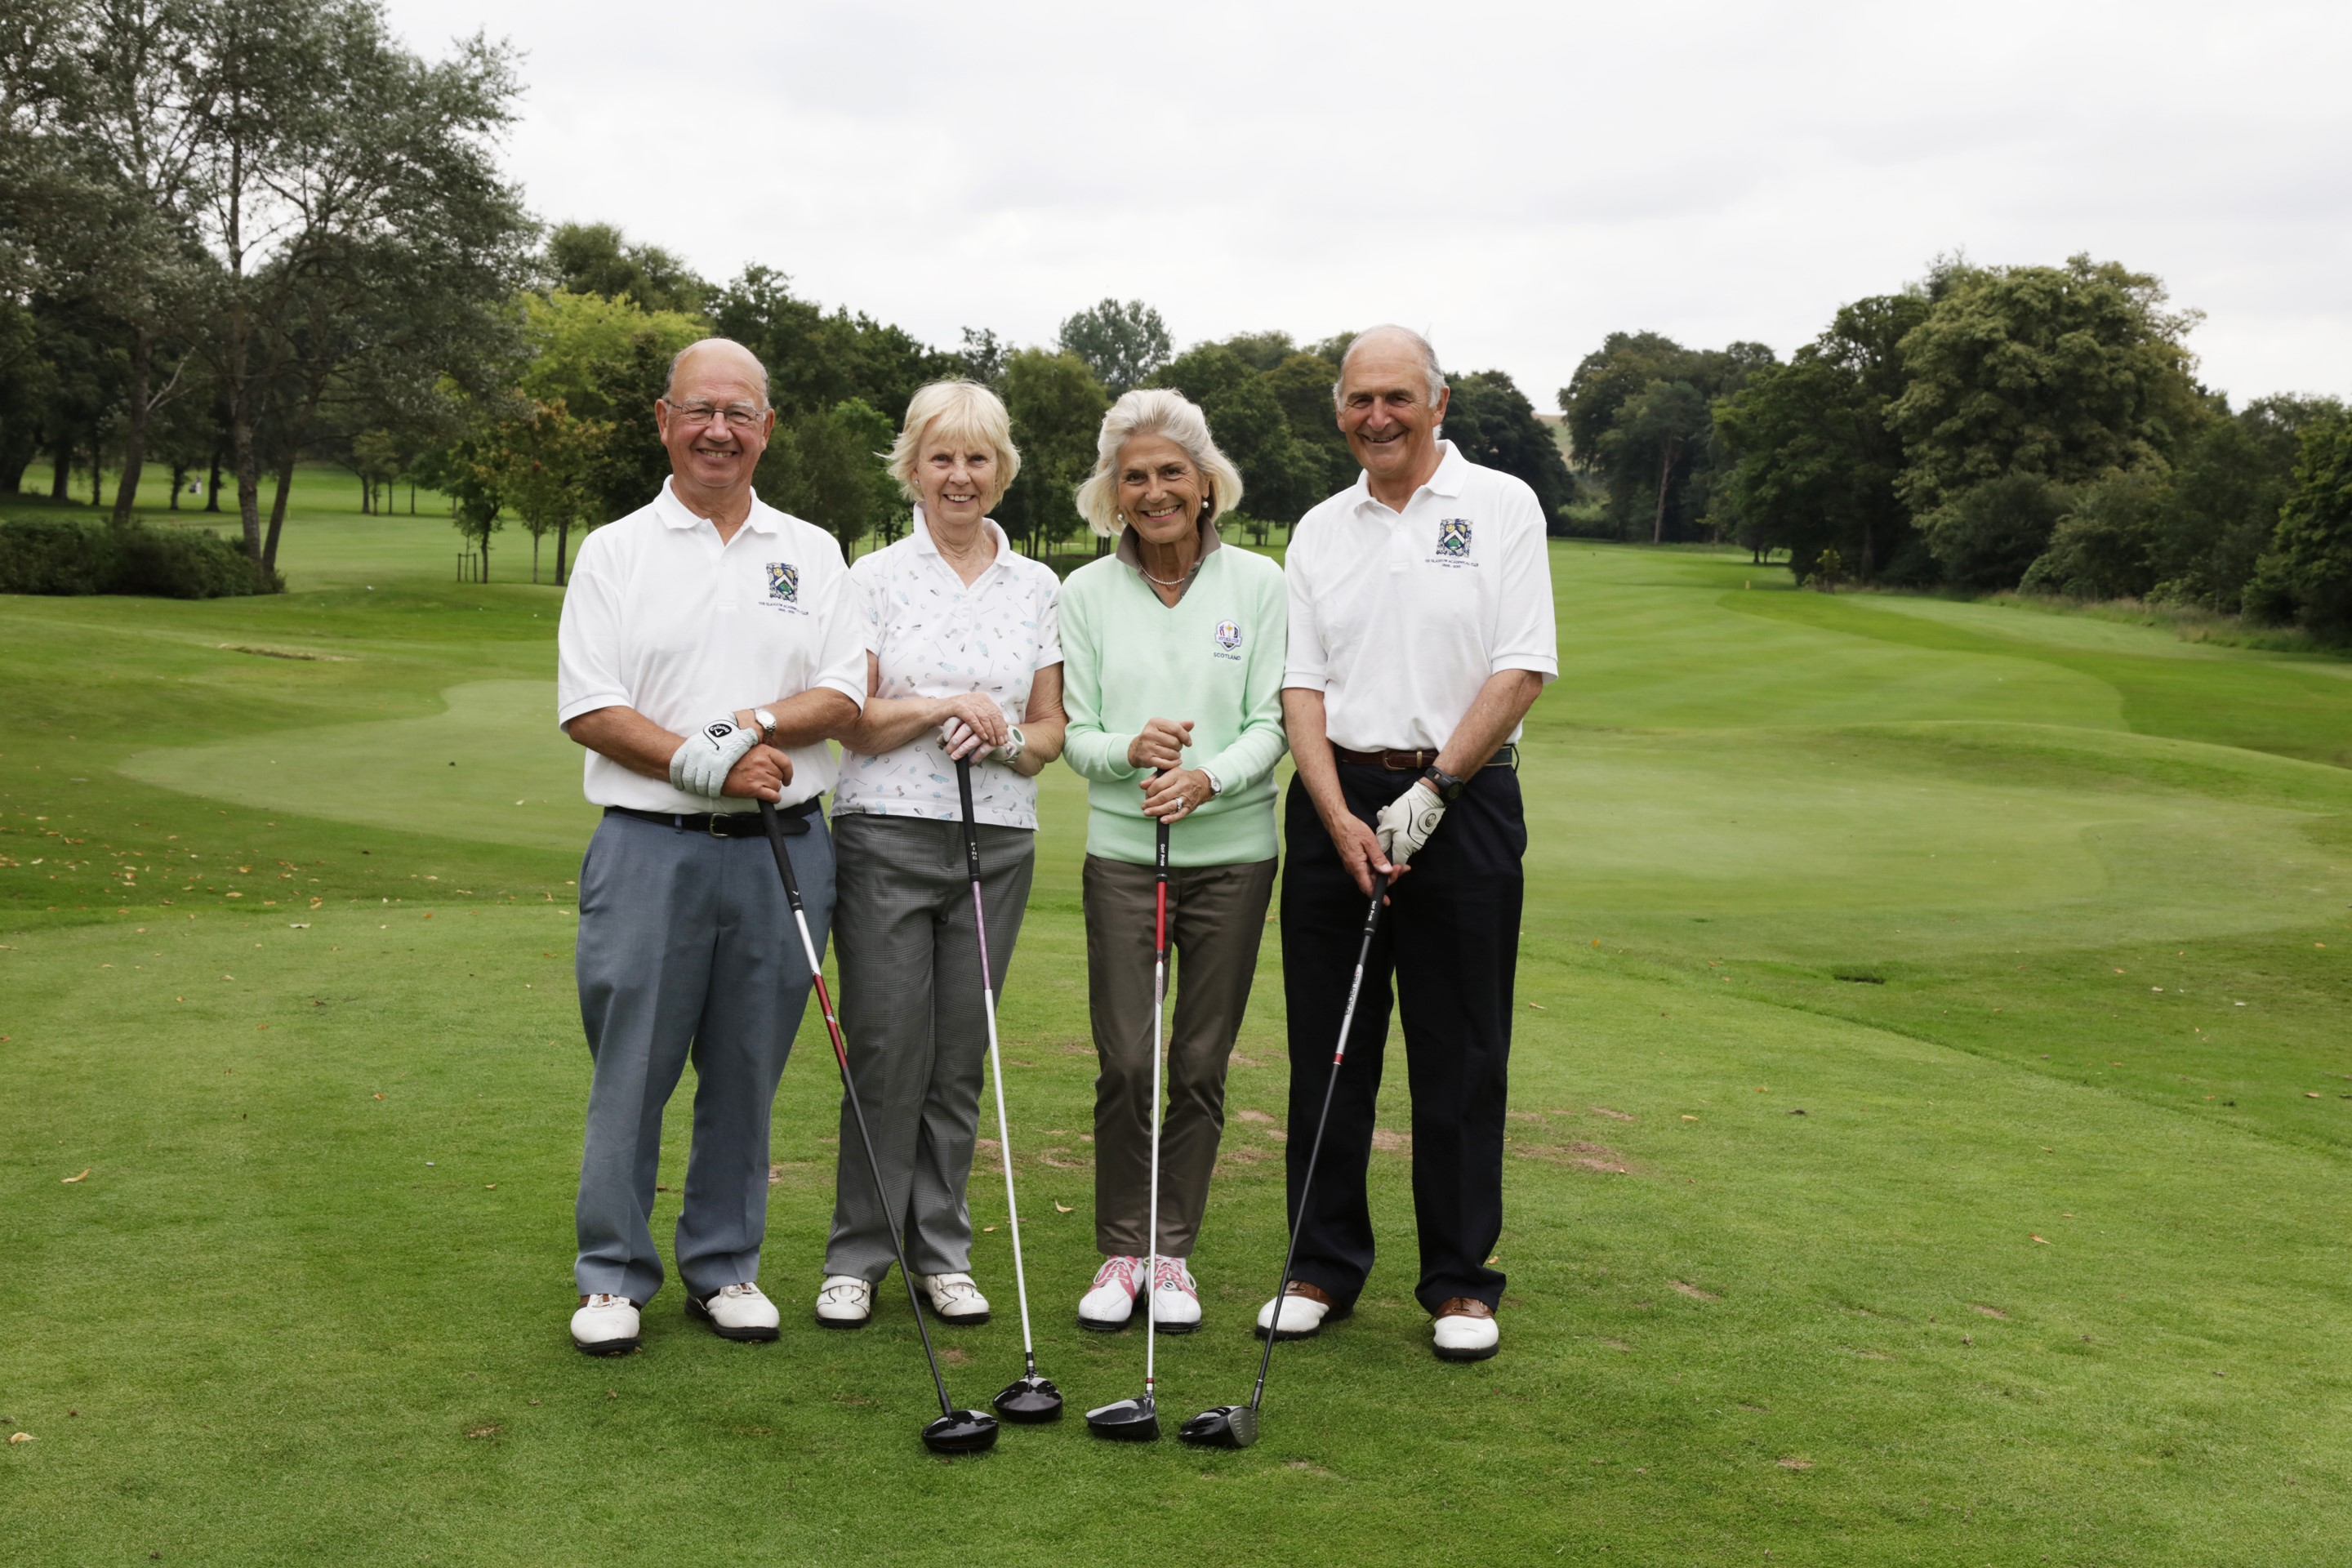 150th Anniversary Golf Event